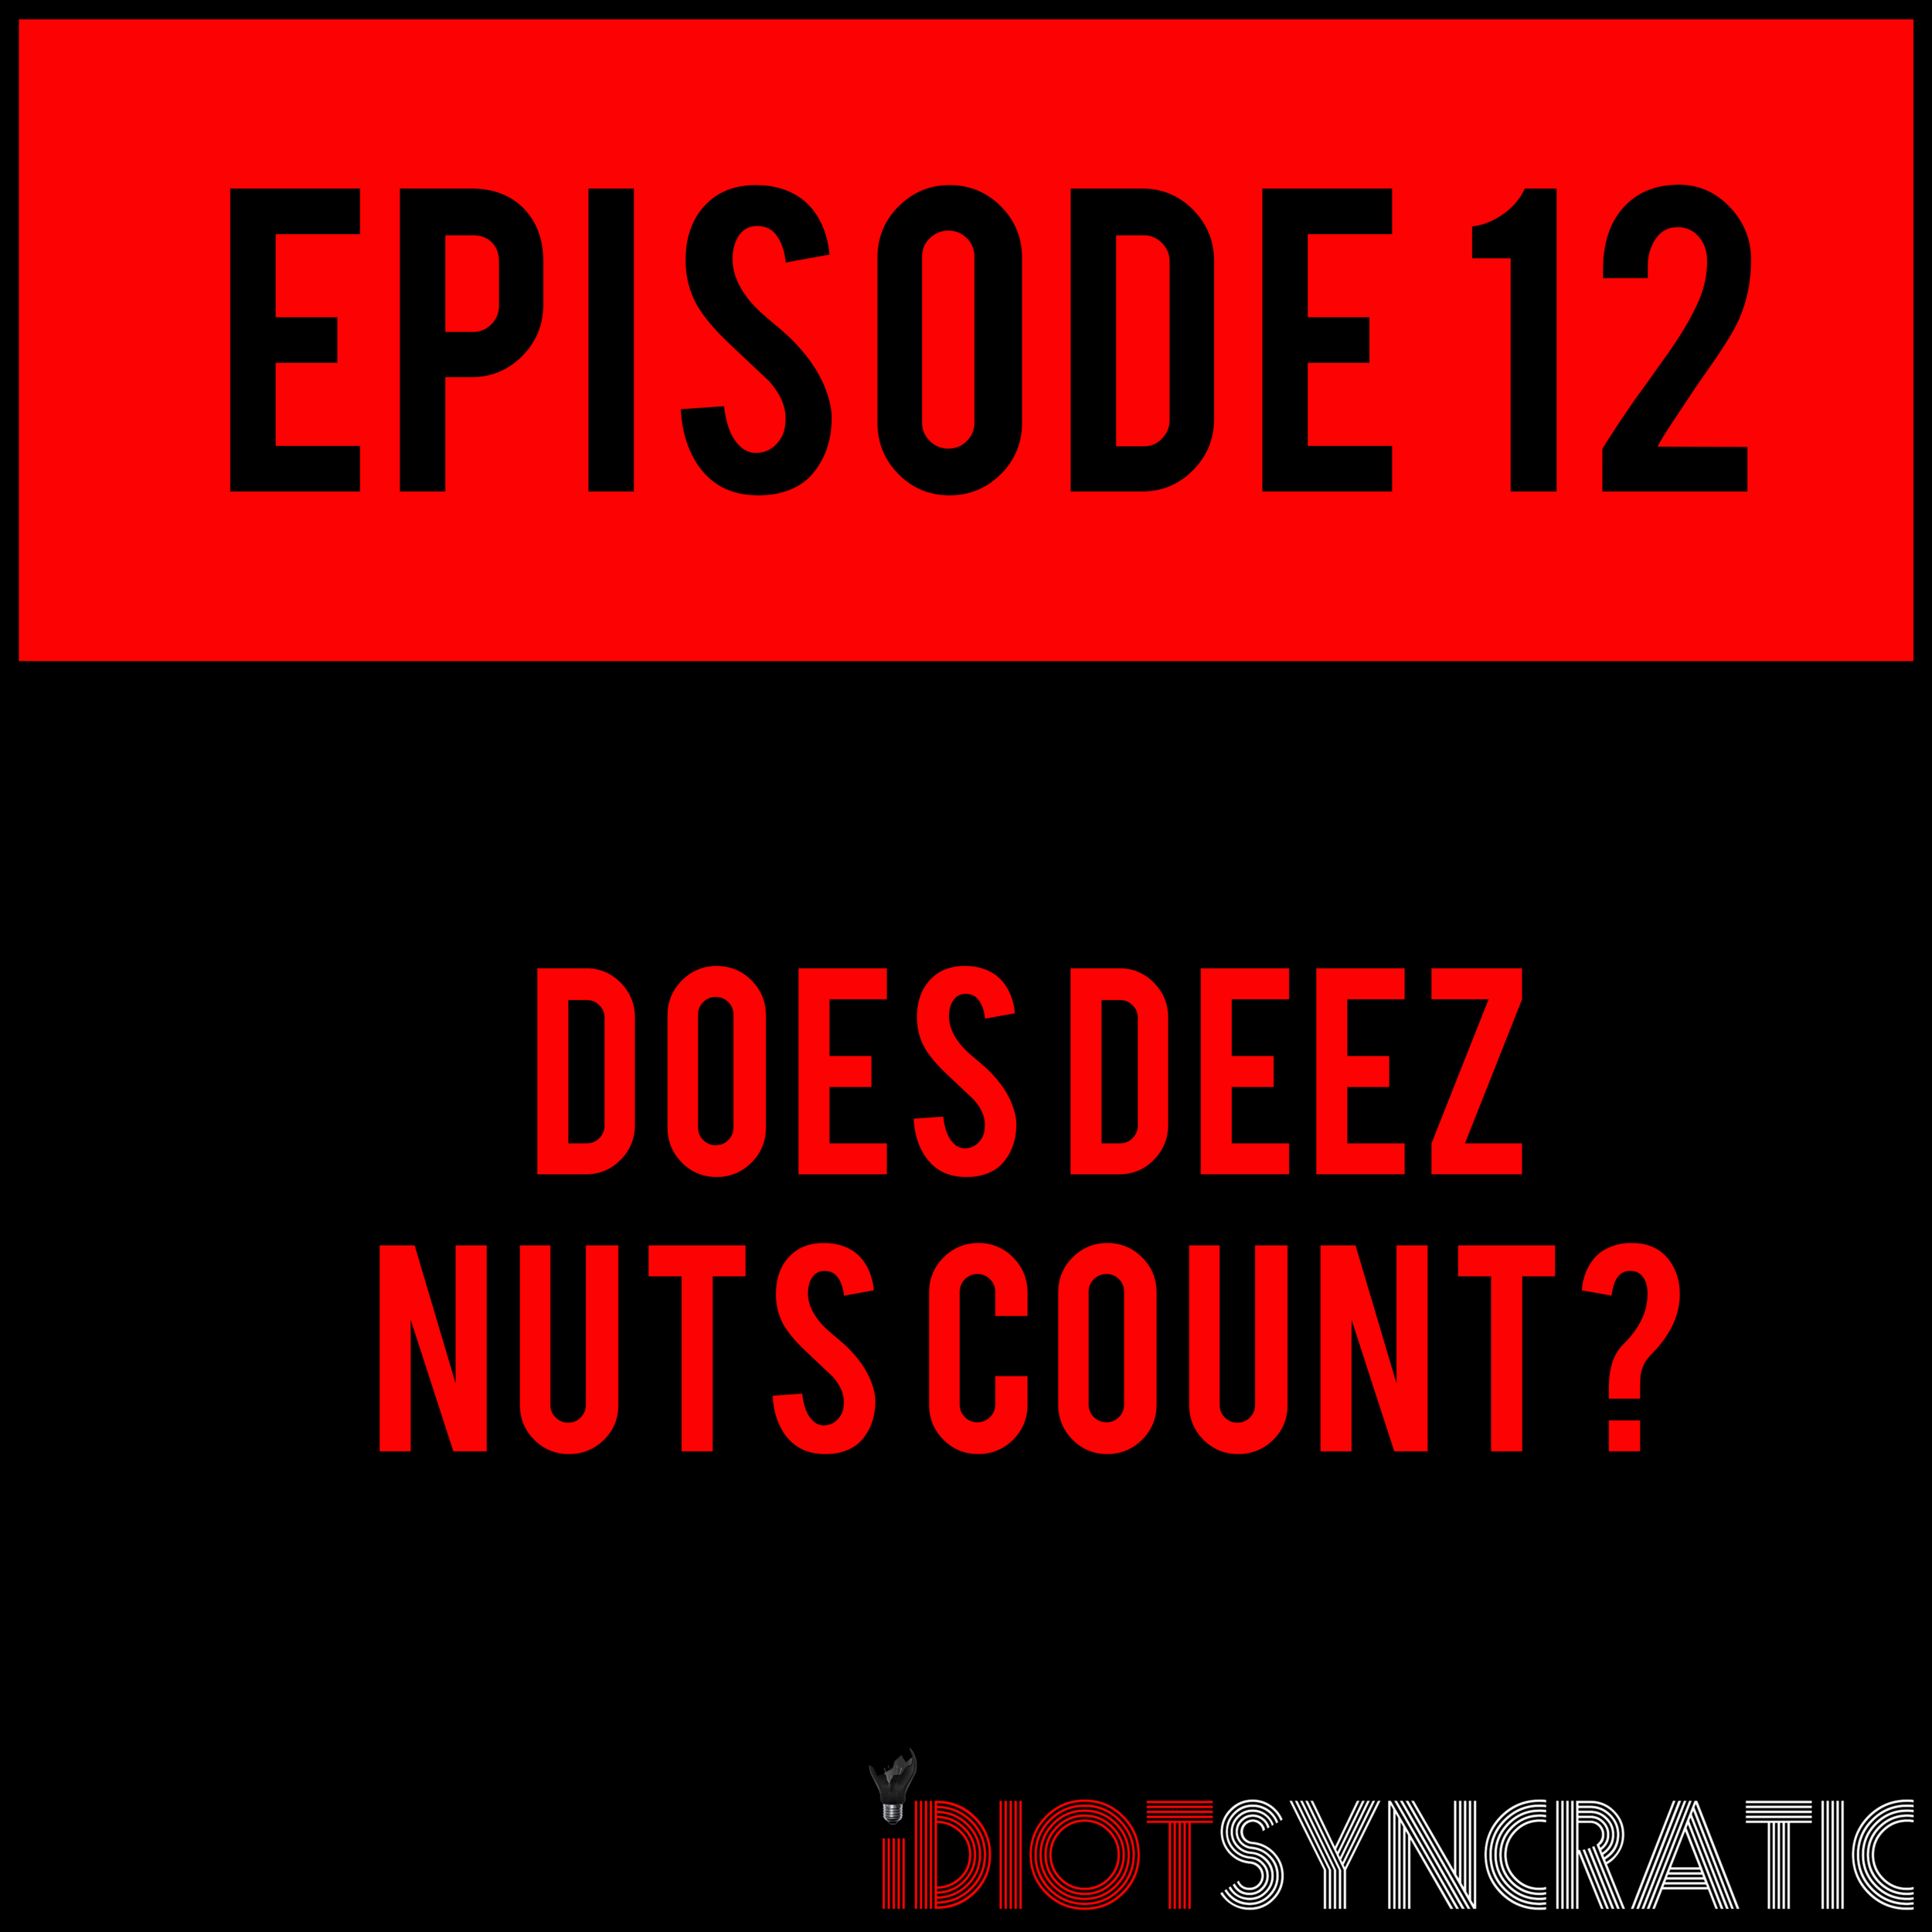 EPISODE 12 - DOES DEEZ NUTS COUNT? - EPISODE 12 is out now. Let's get it going.